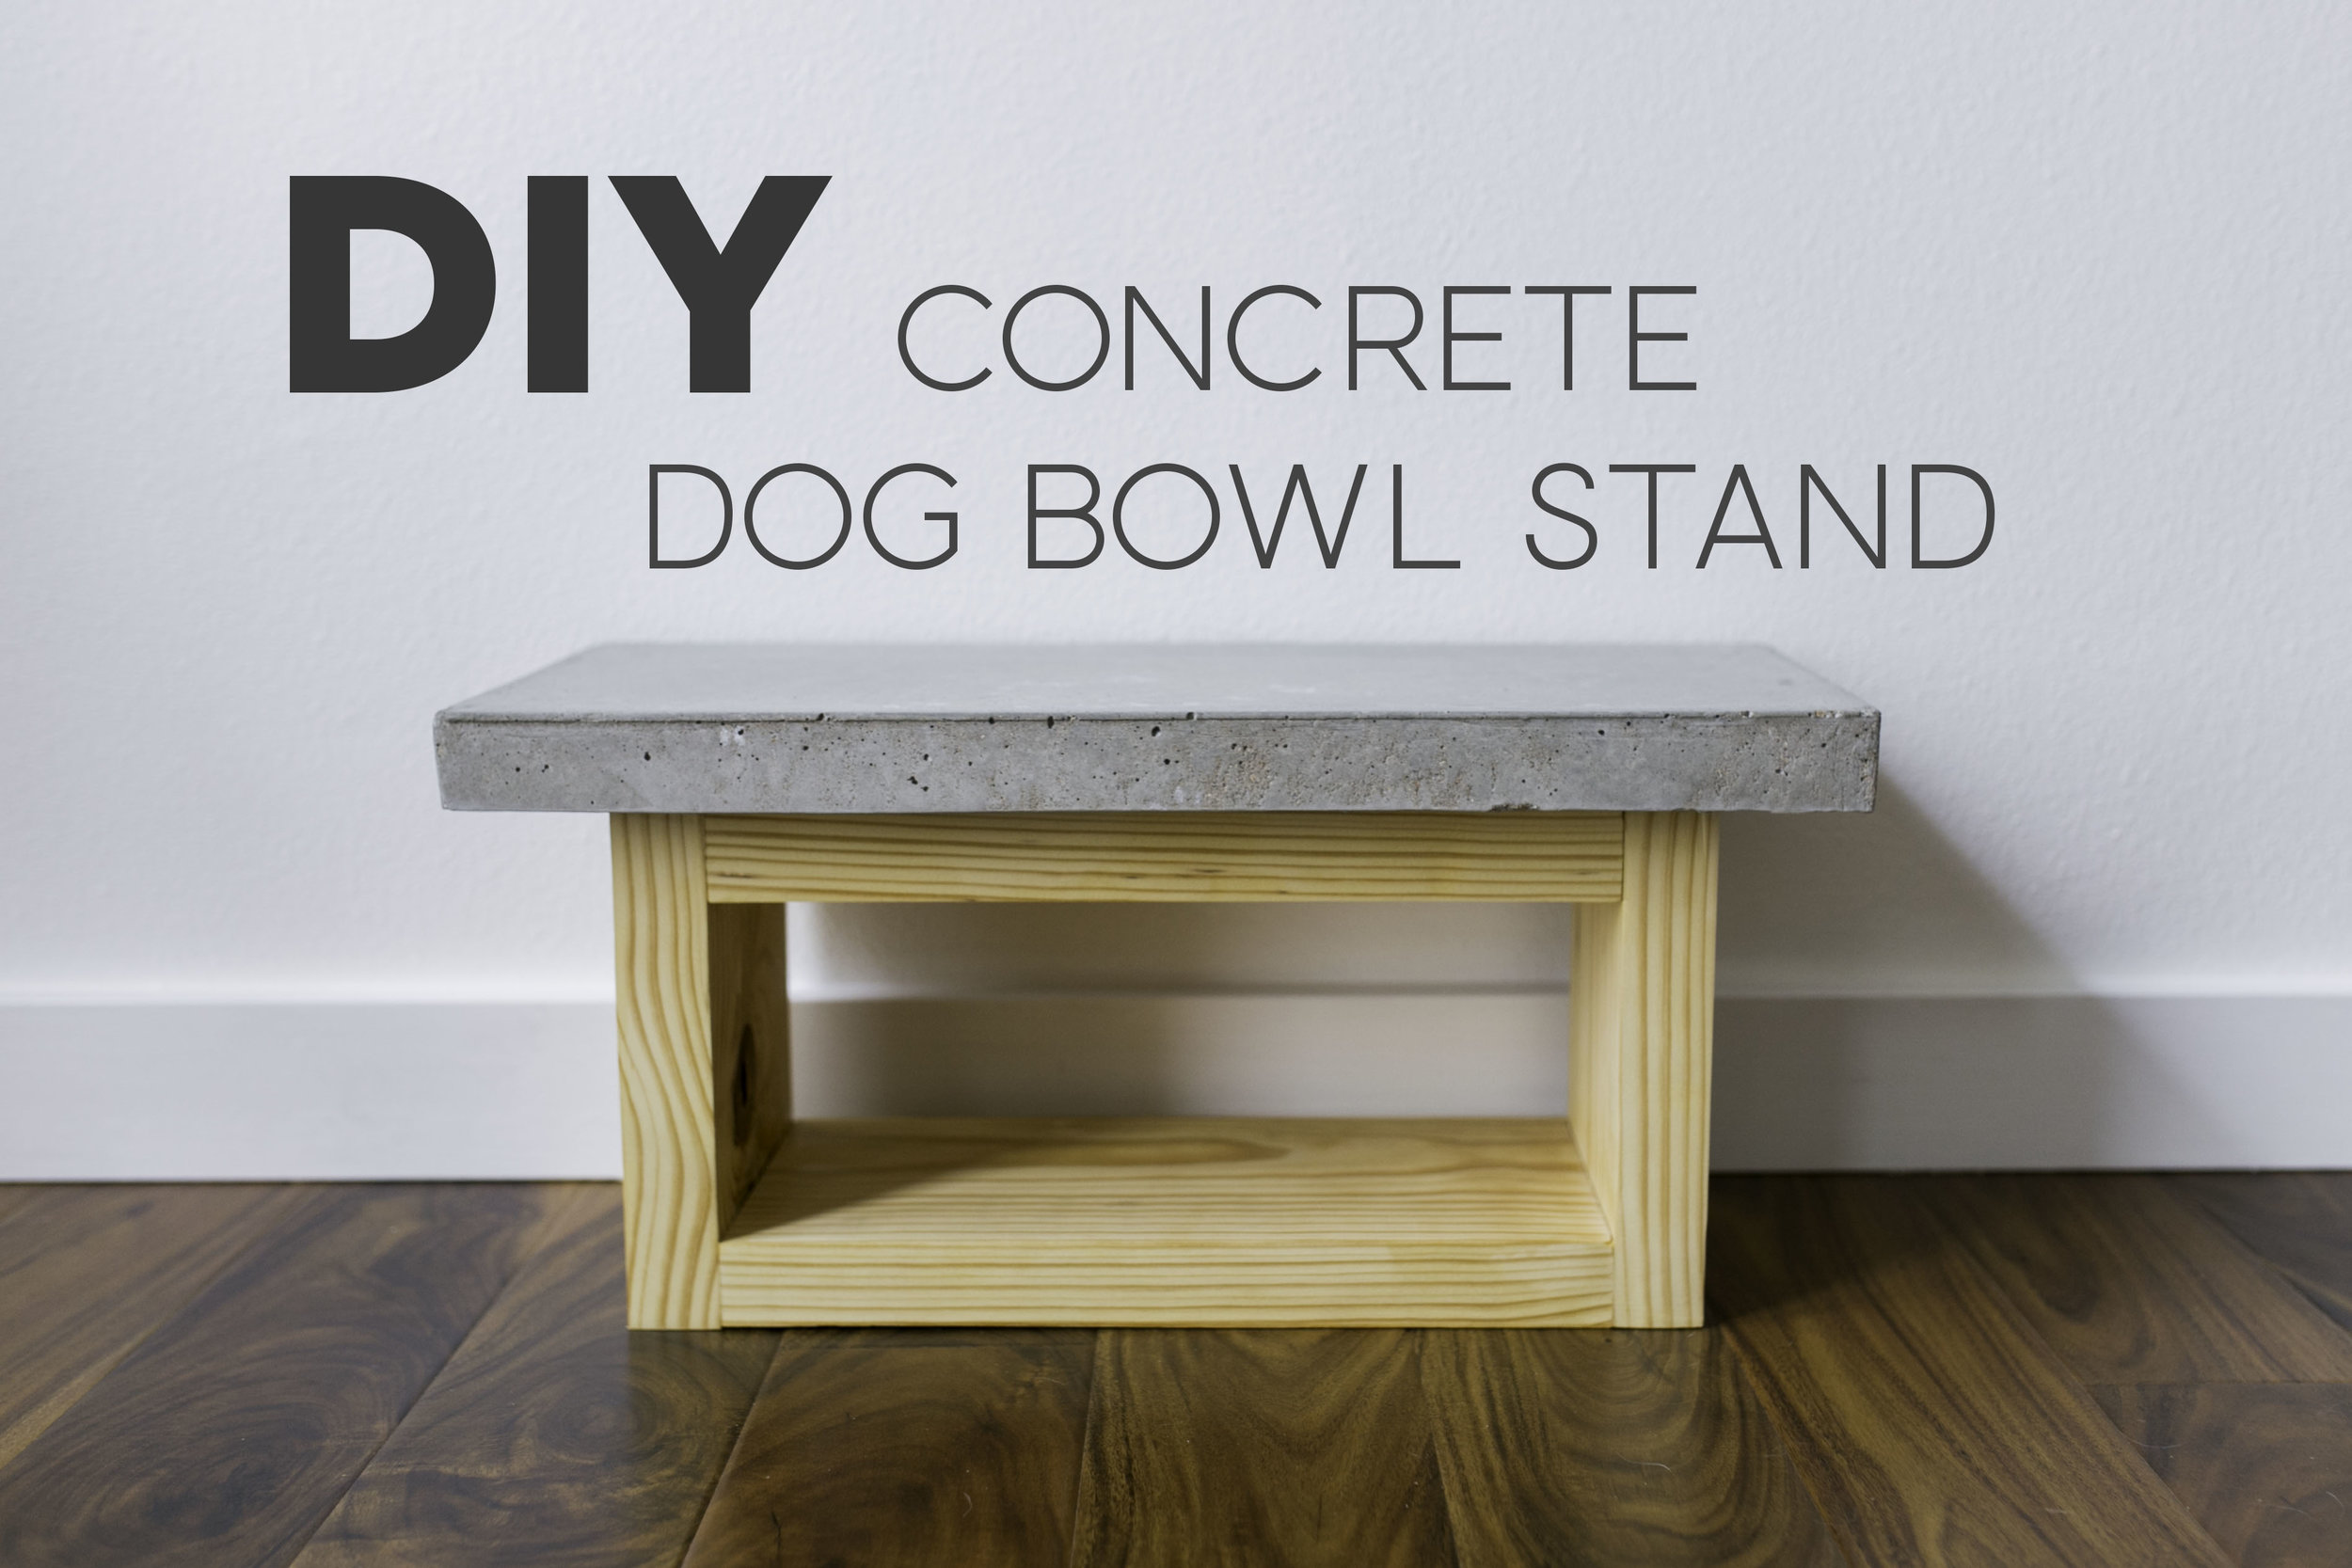 Making wooden bowls Painted Wood Diy Dog Bowl Stand Concrete amp Wood Harsh26diq Wordpresscom Diy Dog Bowl Stand Concrete Wood Maker Gray